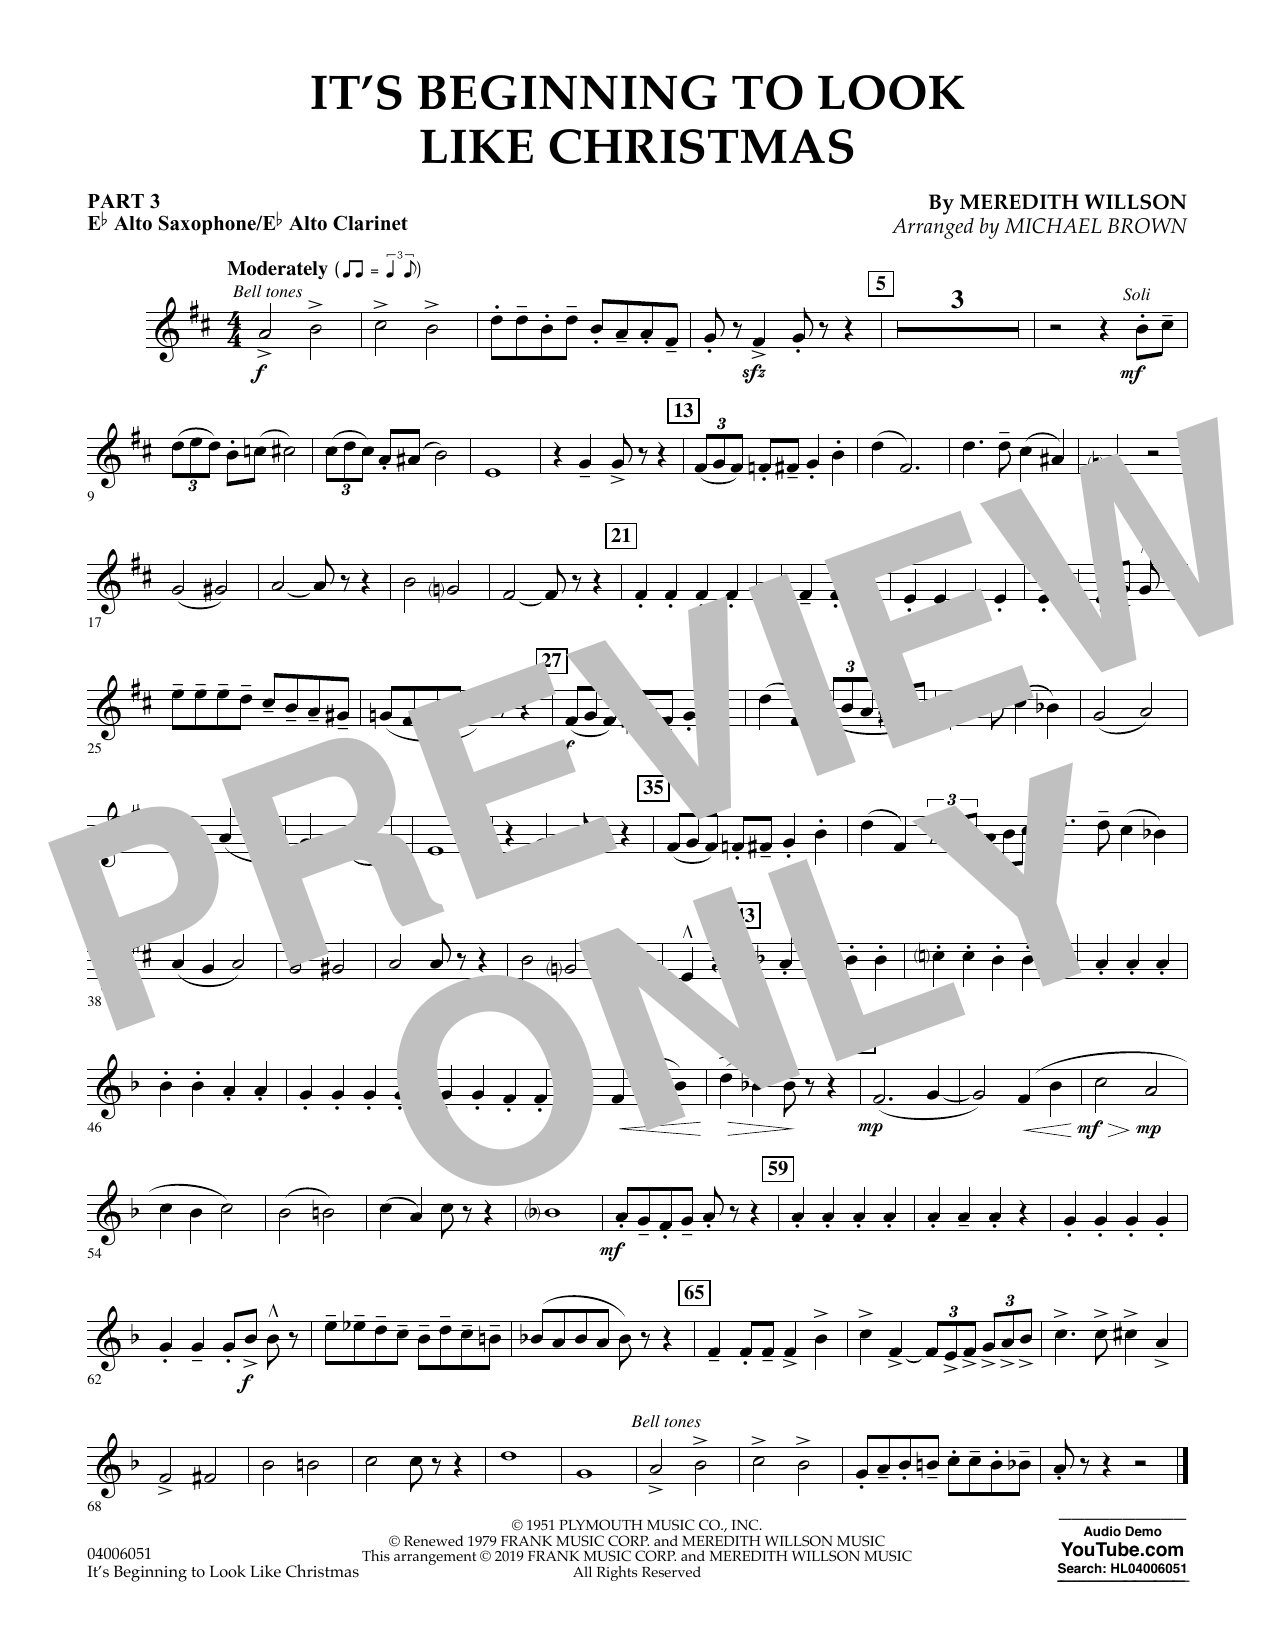 Meredith Willson It's Beginning to Look Like Christmas (arr. Michael Brown) - Pt.3 - Eb Alto Sax/Alto Clar. sheet music preview music notes and score for Concert Band: Flex-Band including 1 page(s)